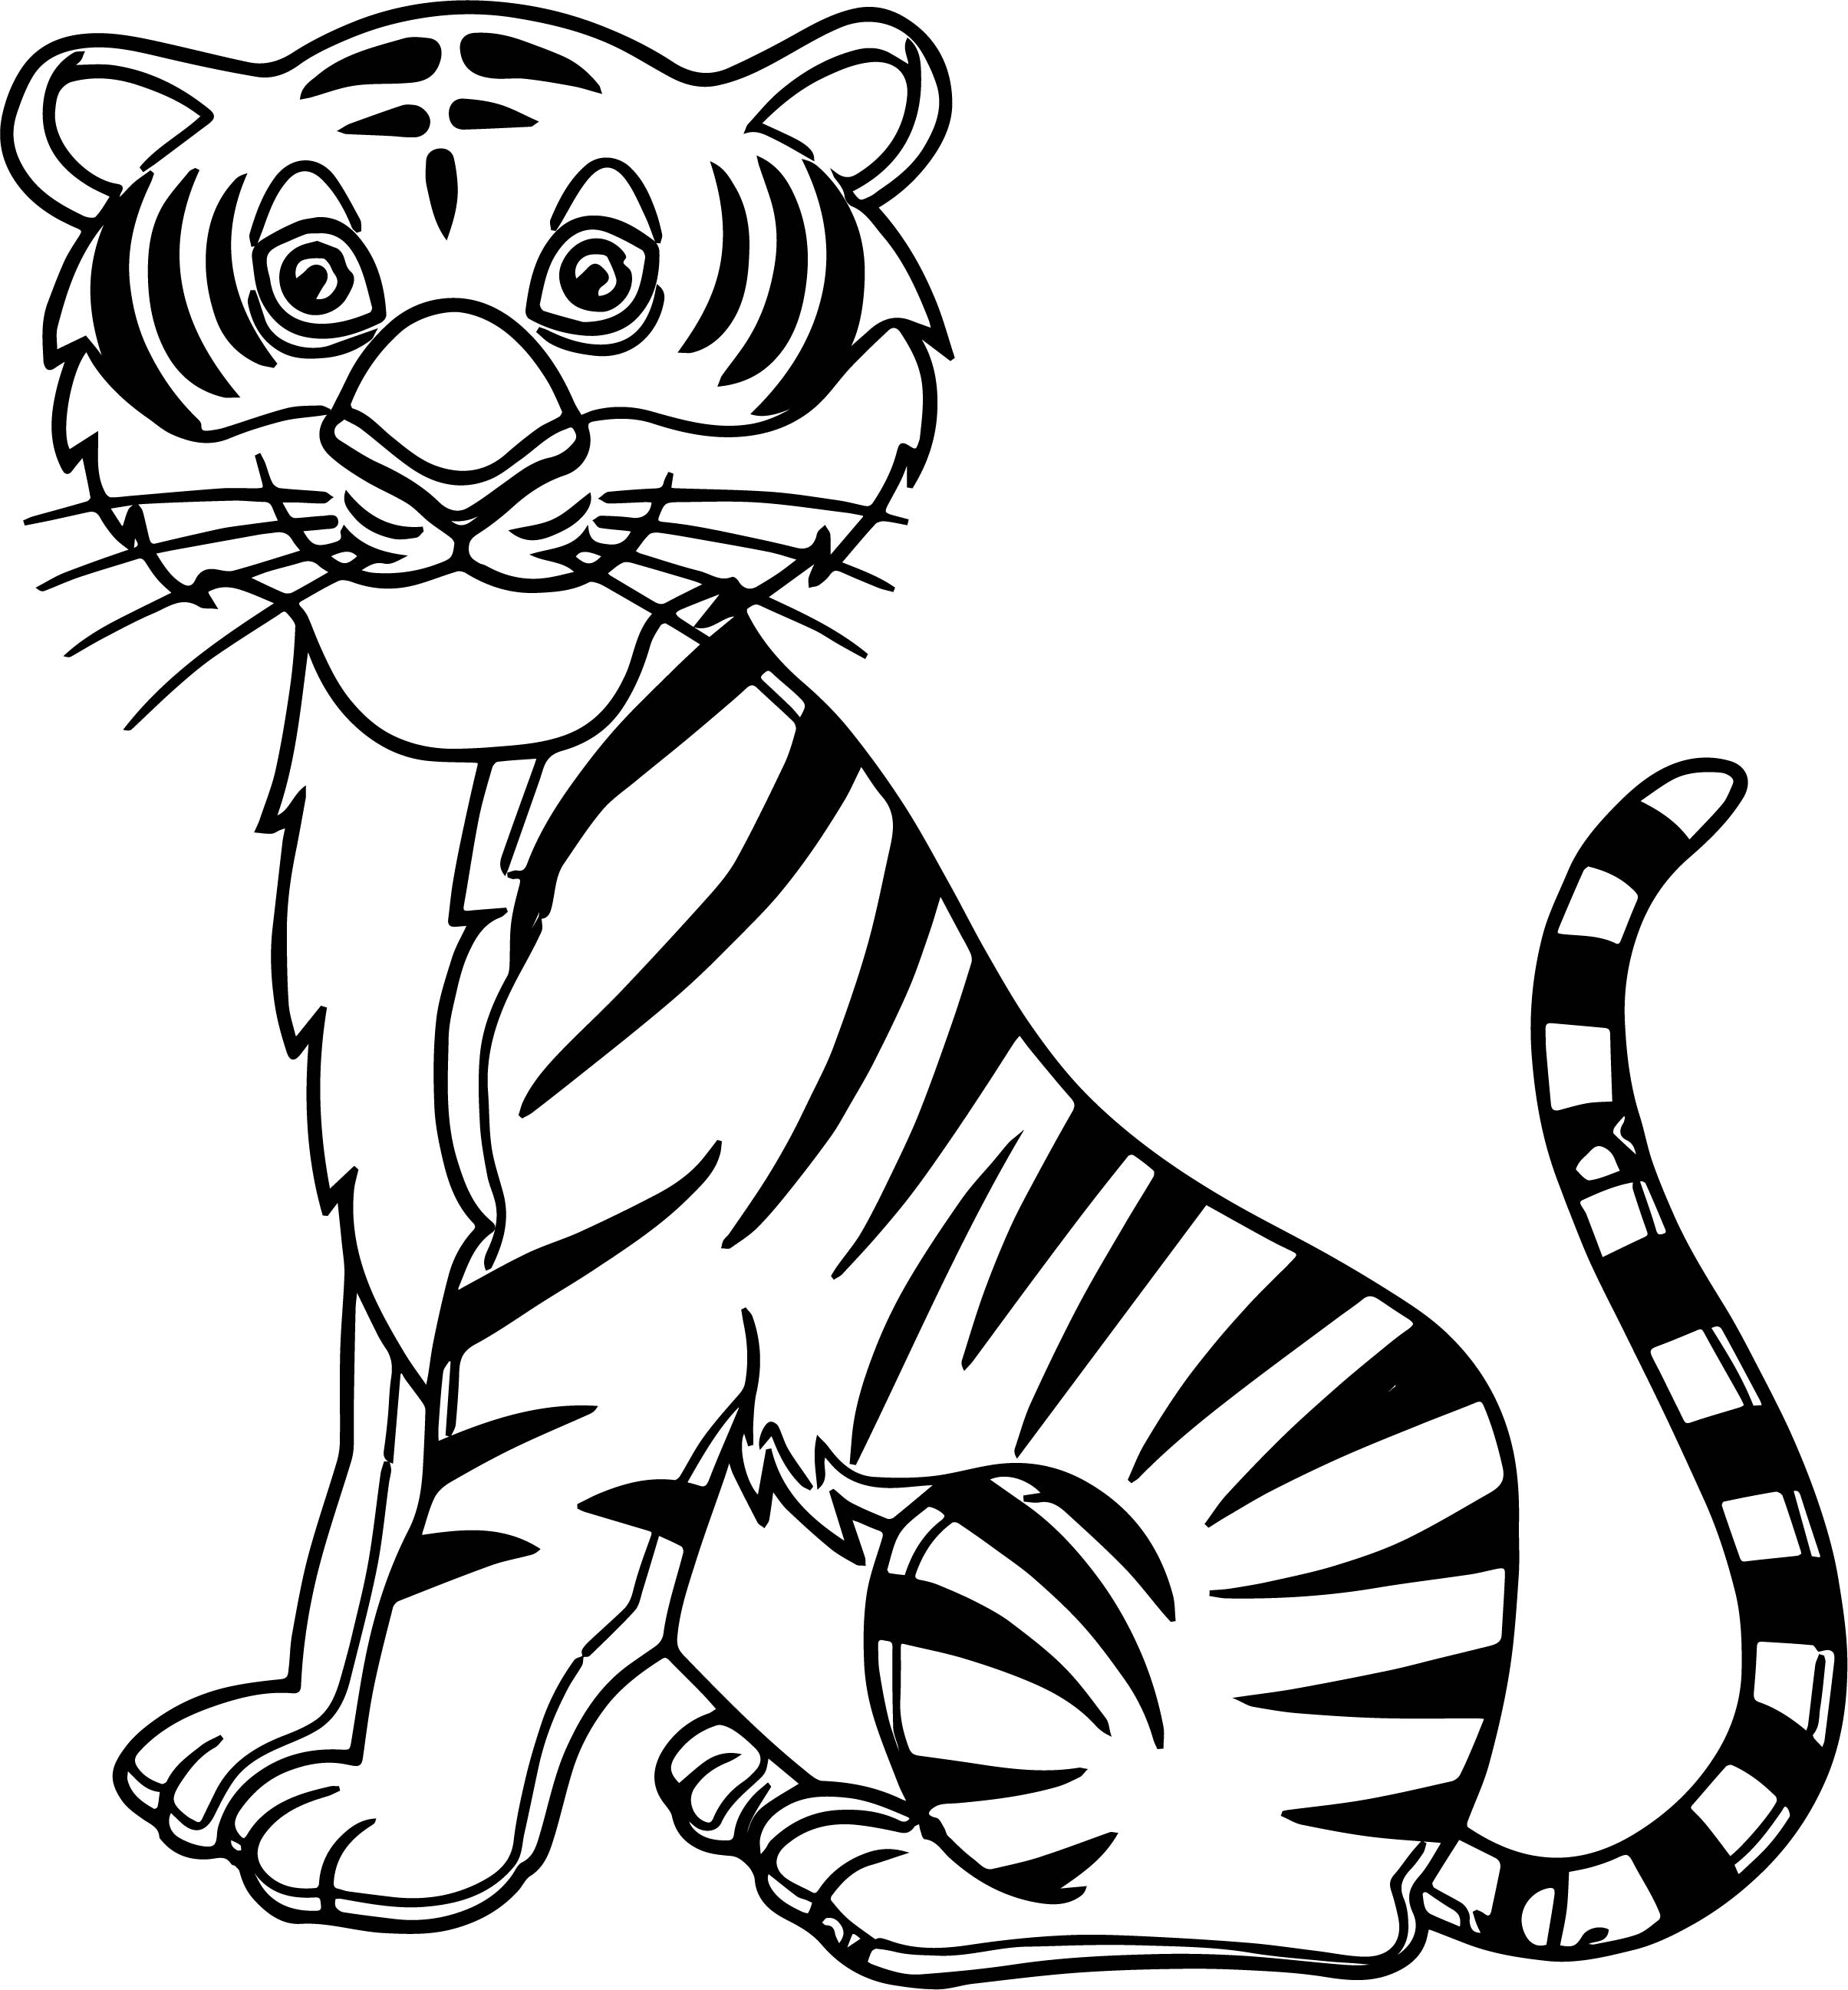 Tiger Smile Coloring Page